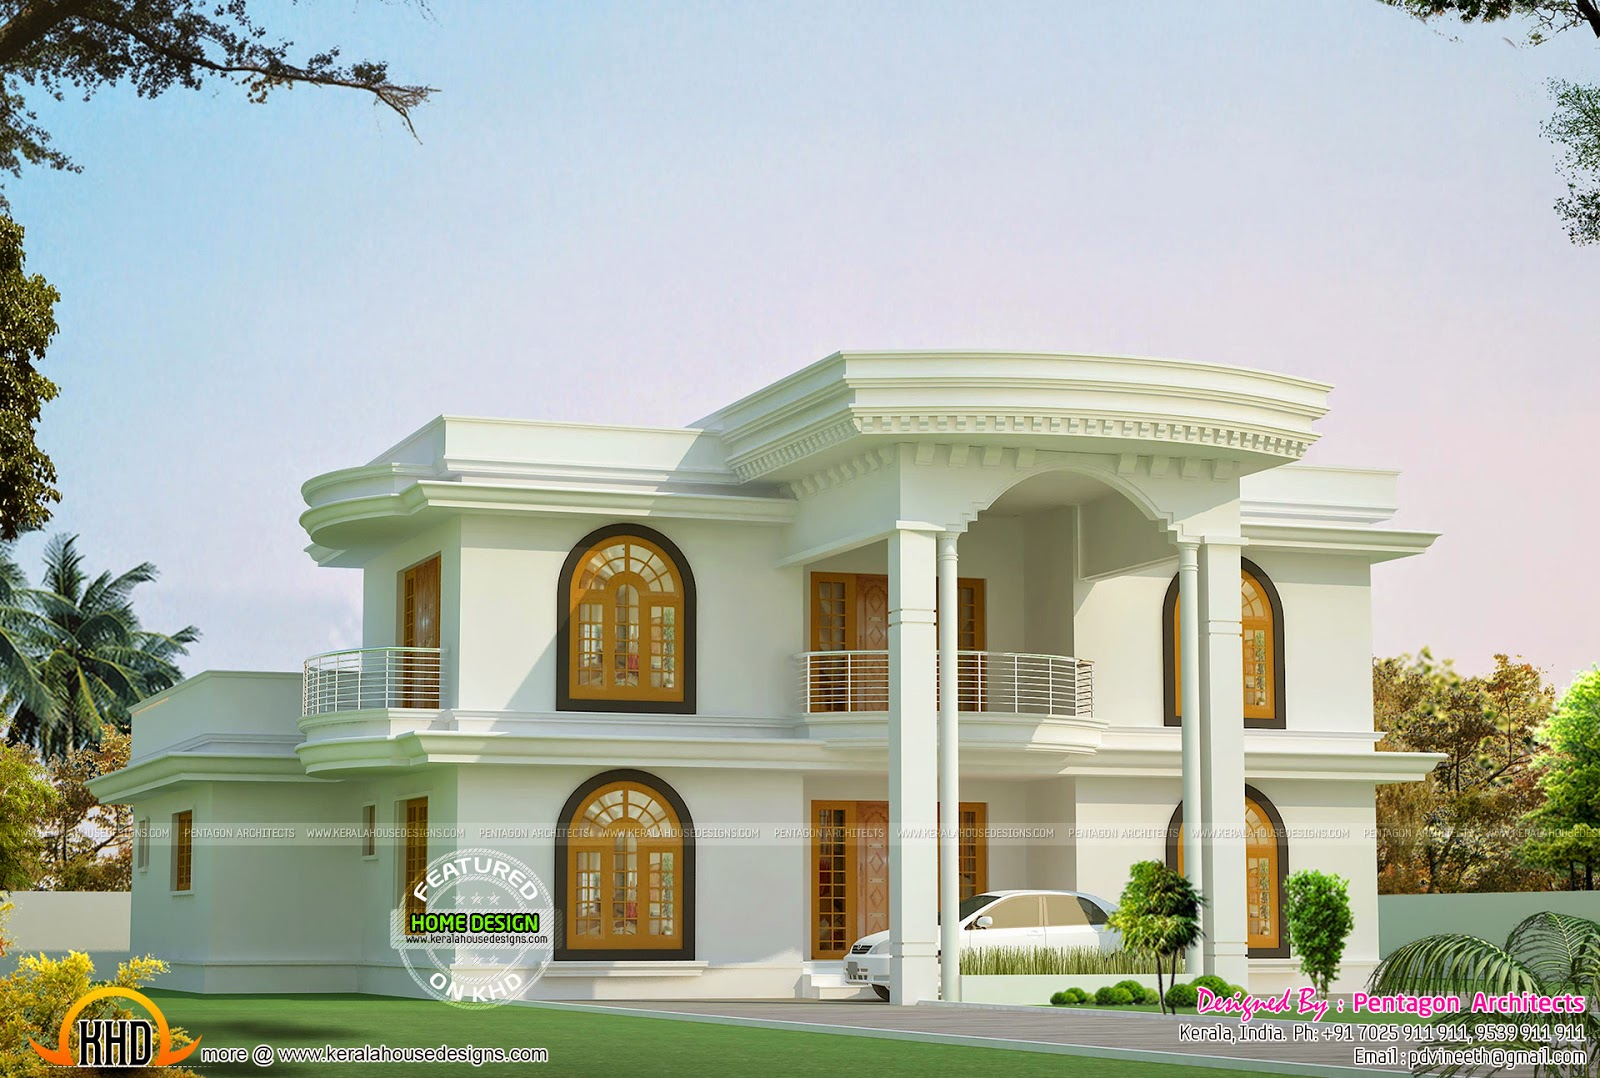 Kerala house plans set part 2 kerala home design and for Kerala home designs and floor plans